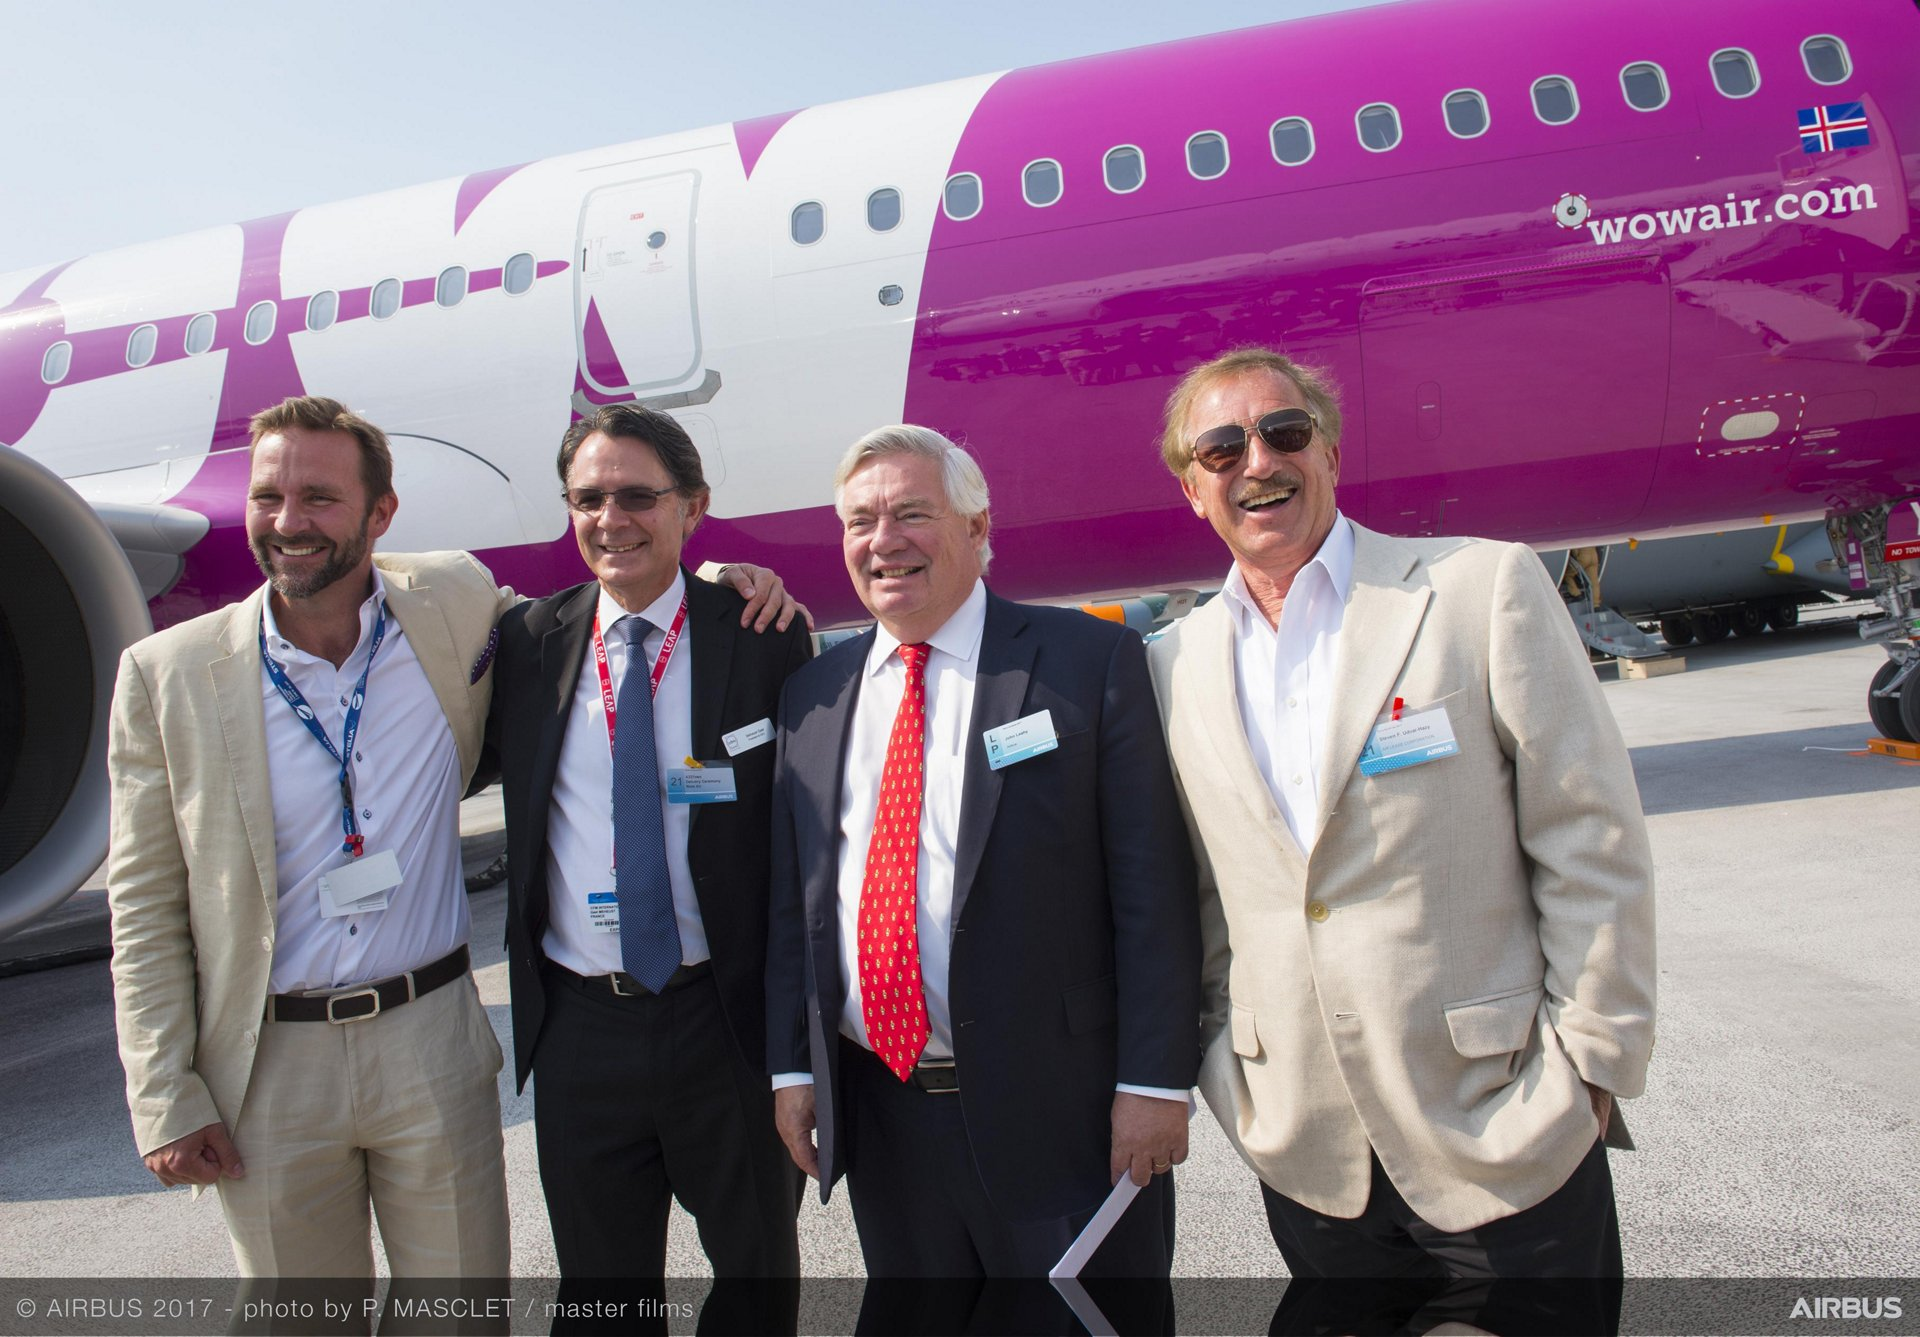 Skuli Mogensen CEO and owner of WOW air, Gael Meheust President and CEO CFM International, John Leahy COO Customers Airbus Commercial aircraft, Steven F. Udvar-Házy Executive Chairman of the board Air Lease Corporation.